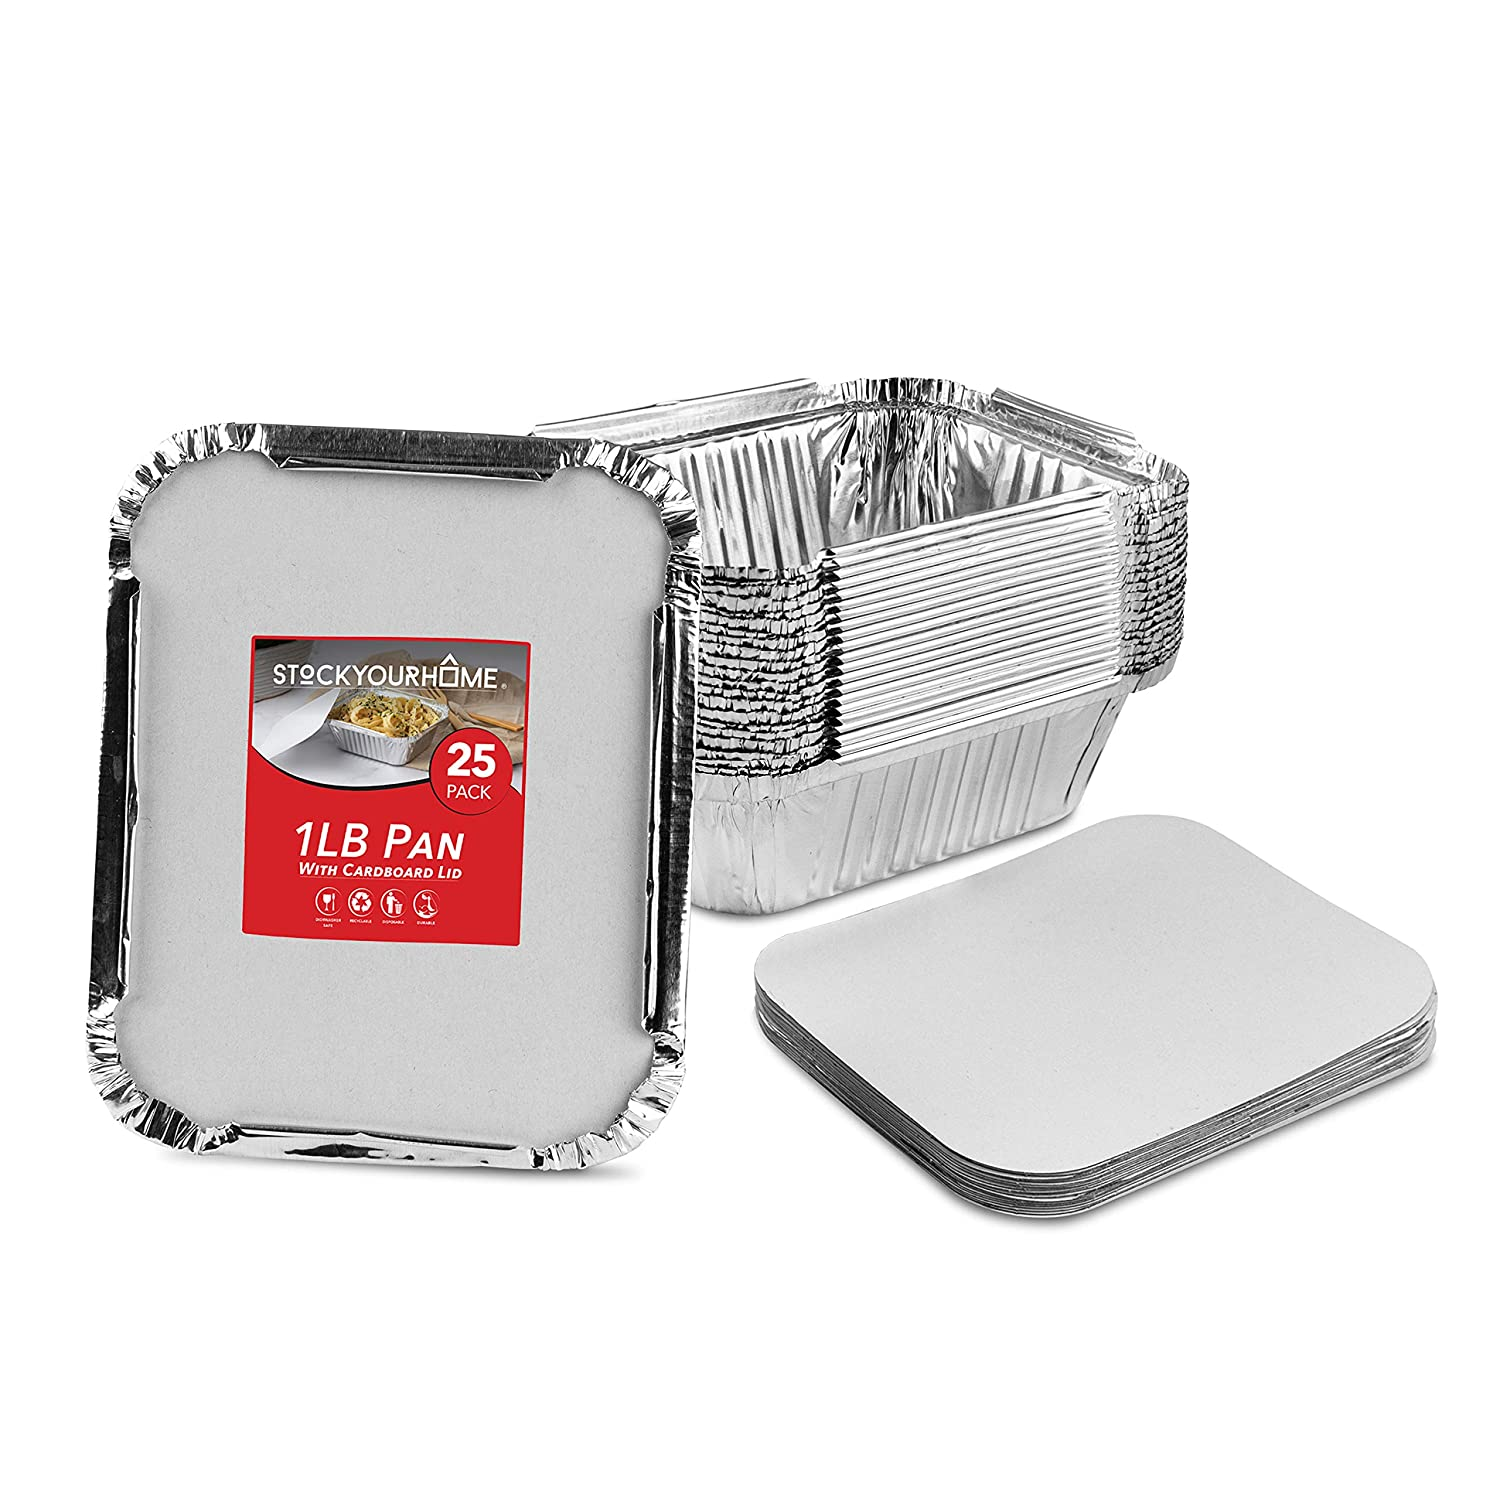 Stock Your Home 1 Lb Aluminum Disposable Cookware With Lids (25 Pack) - Foil Pans Cardboard Lids - Disposable & Recyclable Takeout Trays With Lids - Food Containers For Restaurants, Catering, Delis